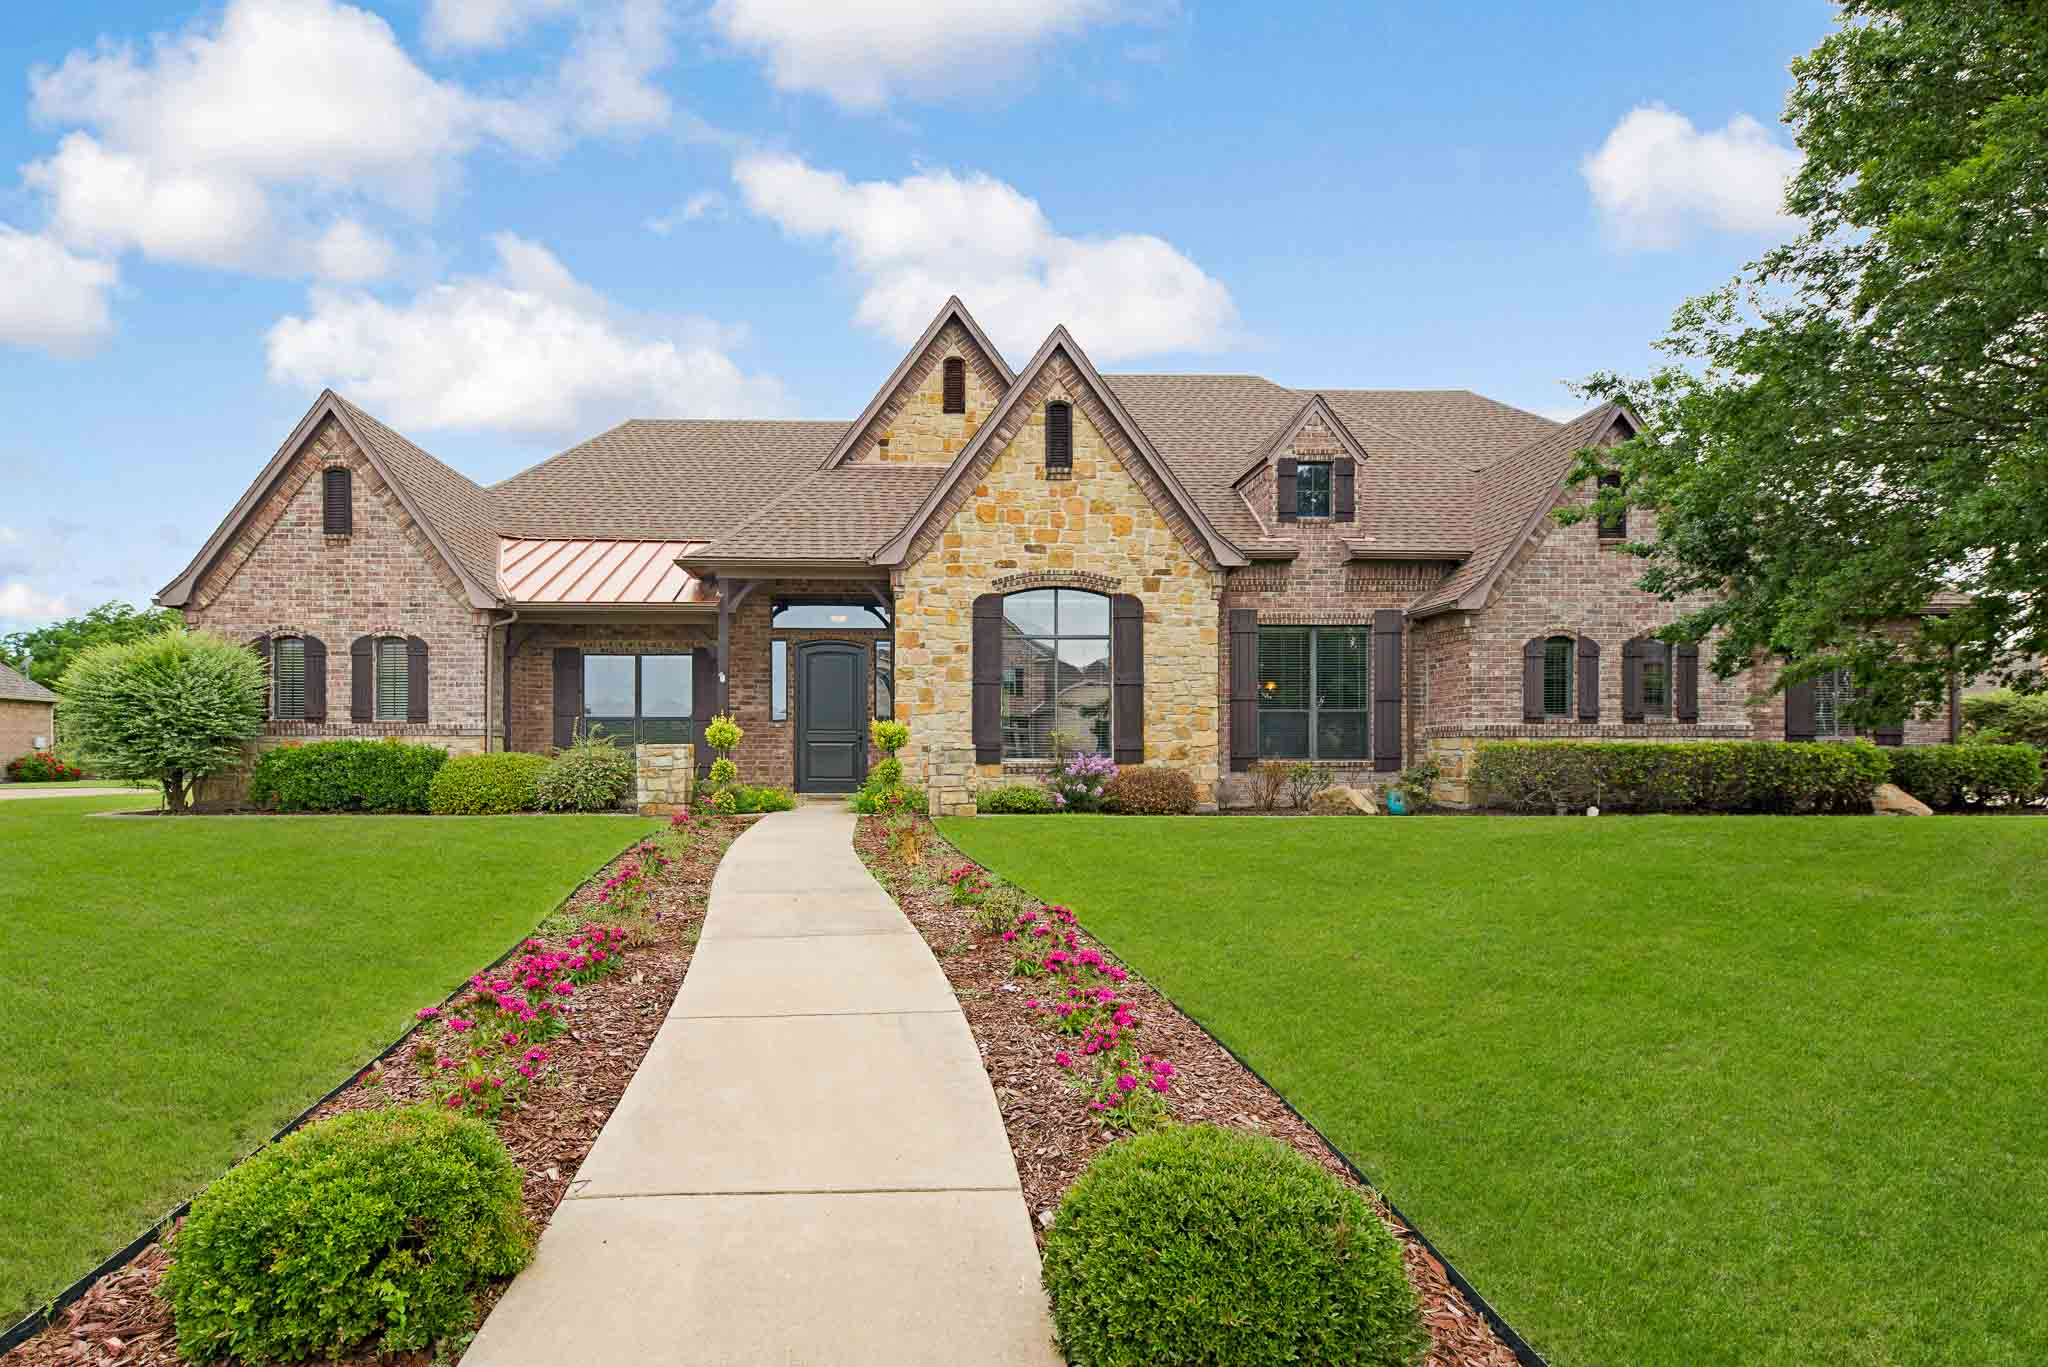 Home on golf course photographed near Fort Worth